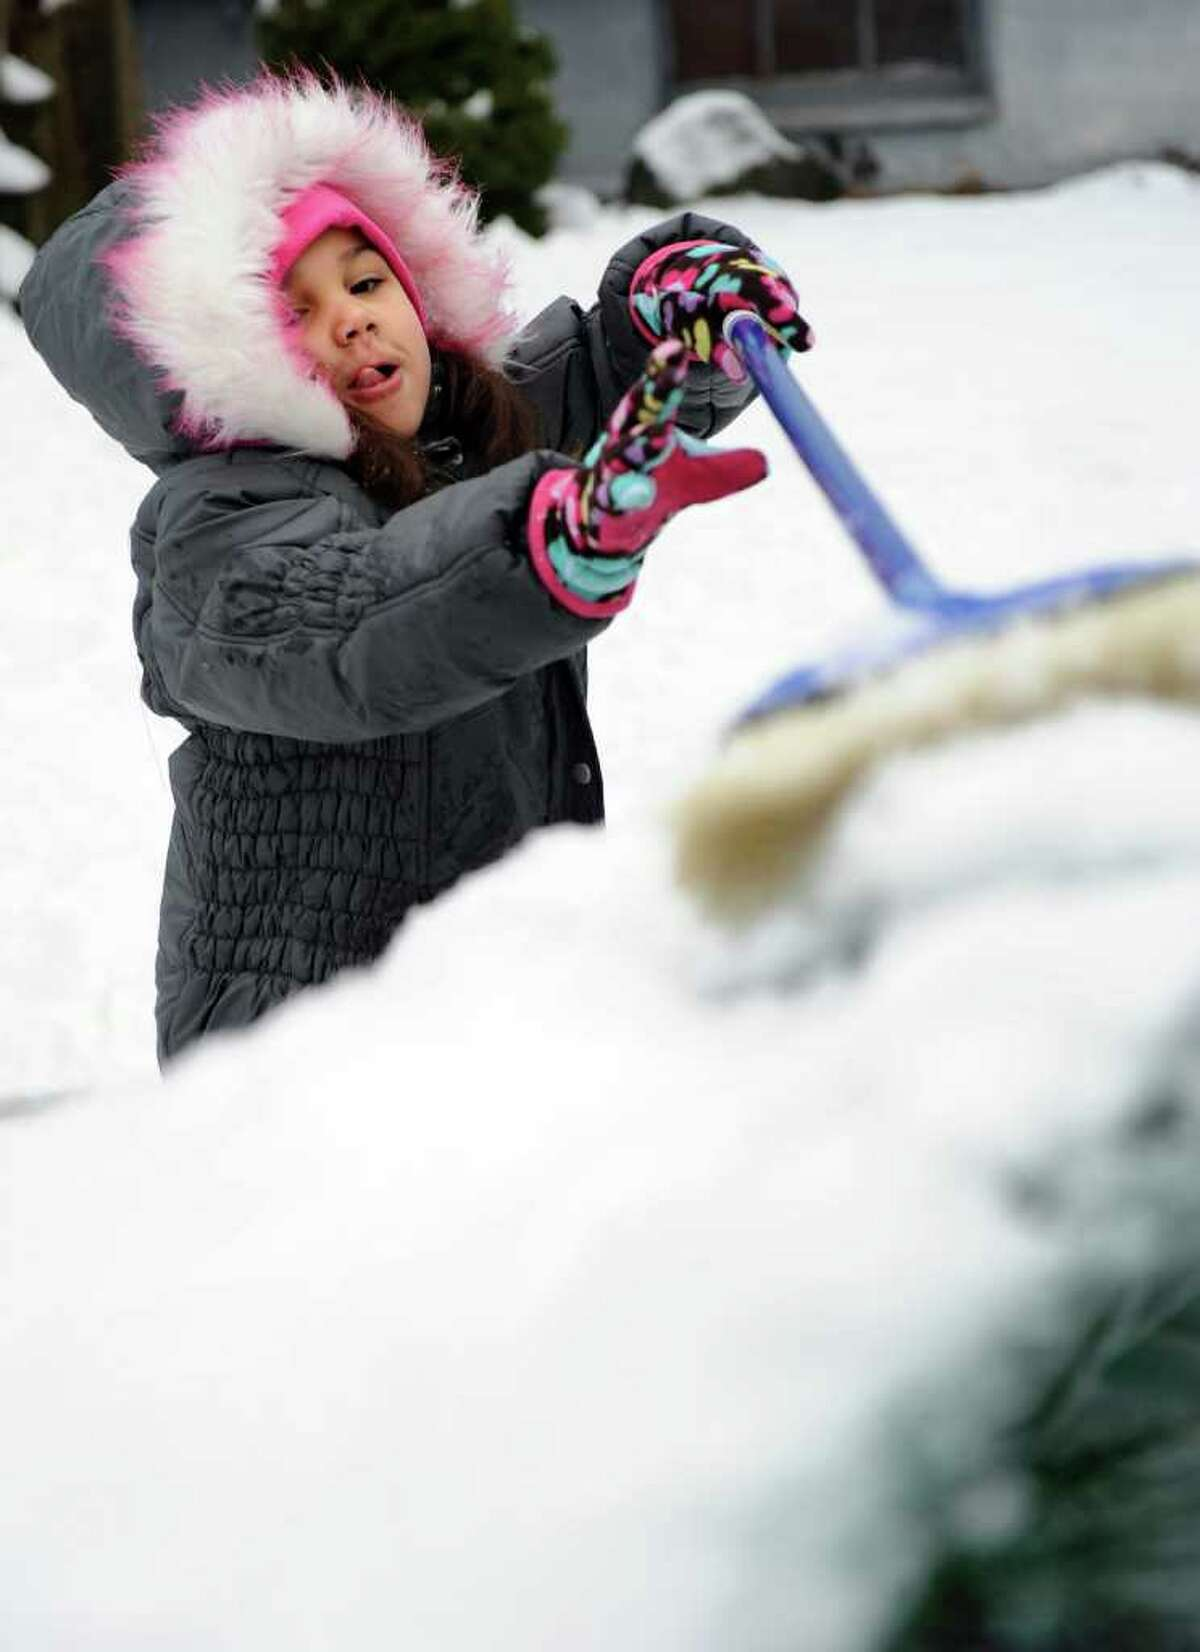 Six-year-old Krystiana Dukes helps clean the snow off her father's car in Derby Friday, Feb. 24, 2012 while waiting for the school bus outside her home.